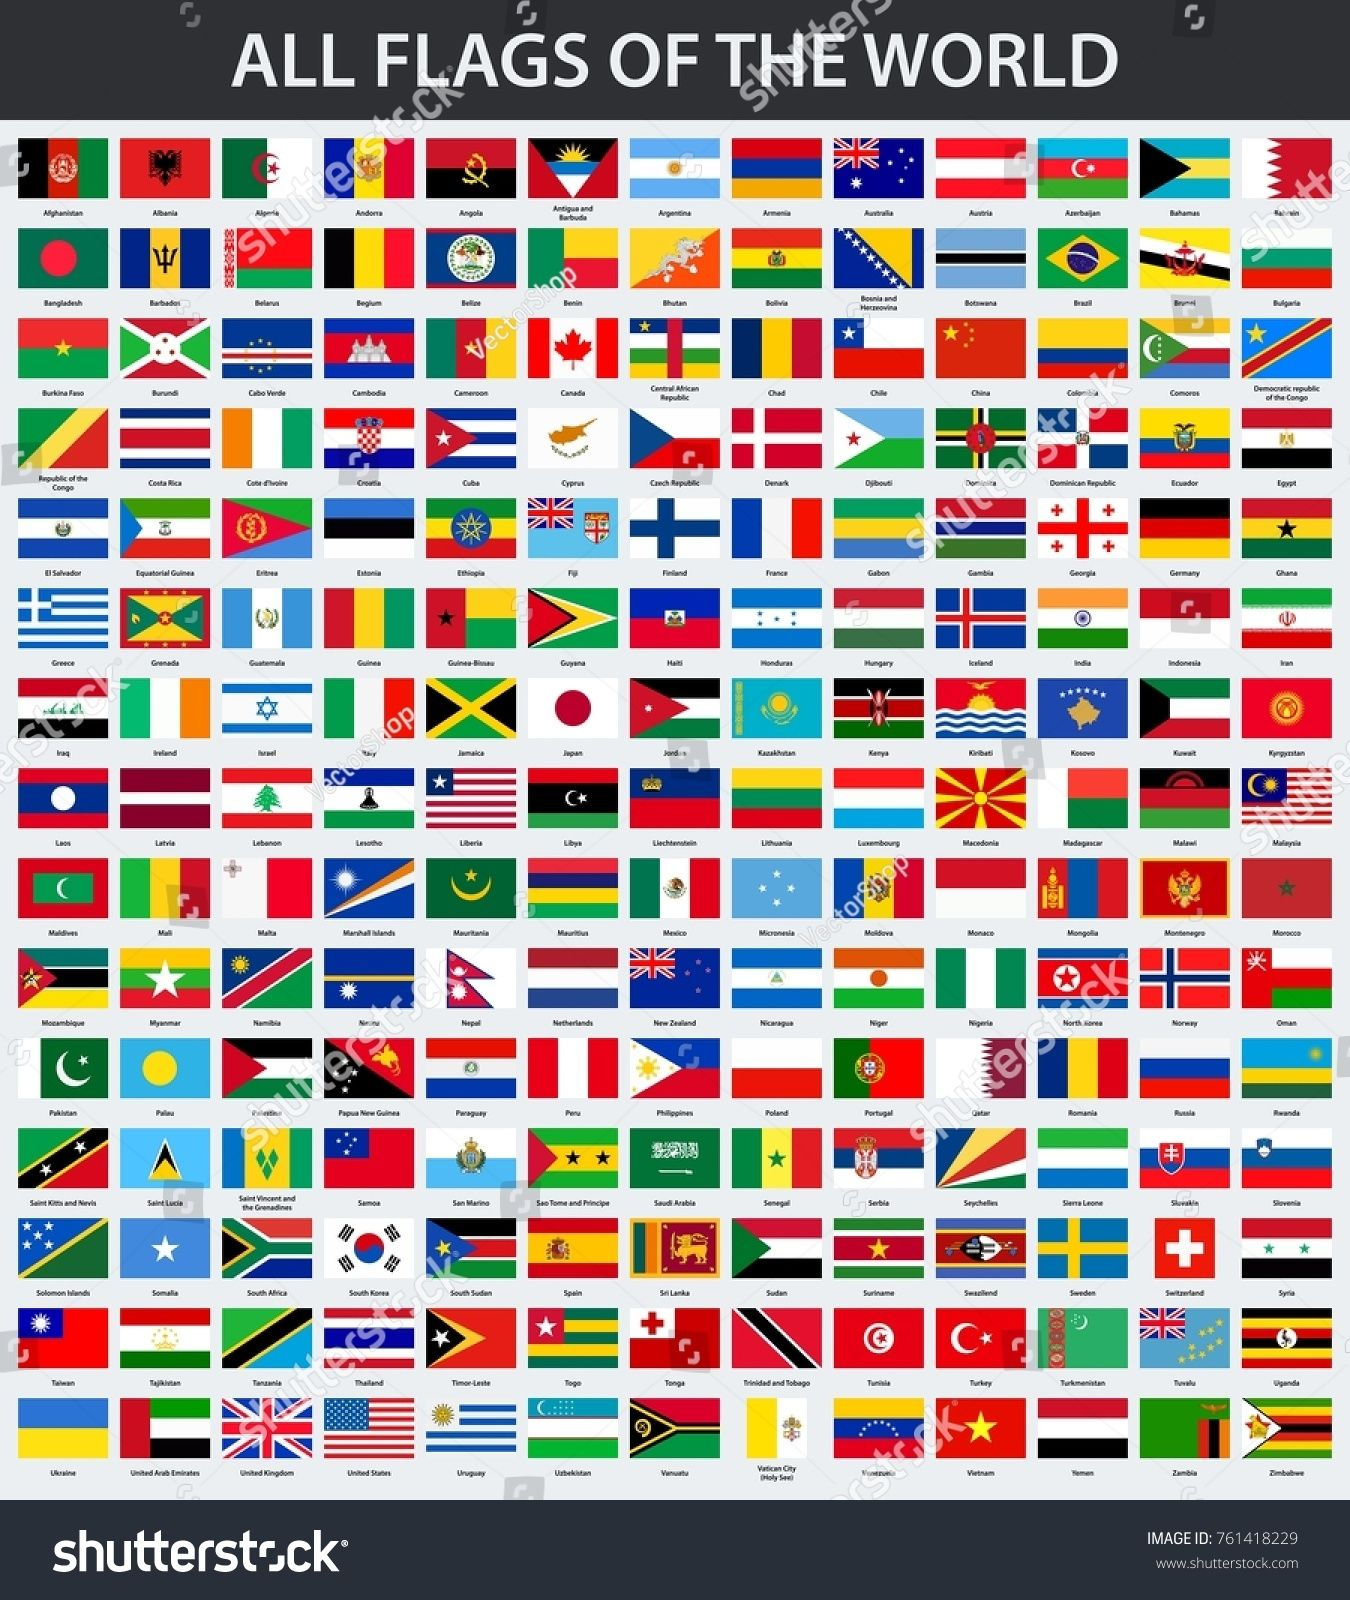 All Flags Of The World In Alphabetical Order World Flags Order Alphabetical All Flags Flags Of The World Alphabetical Order